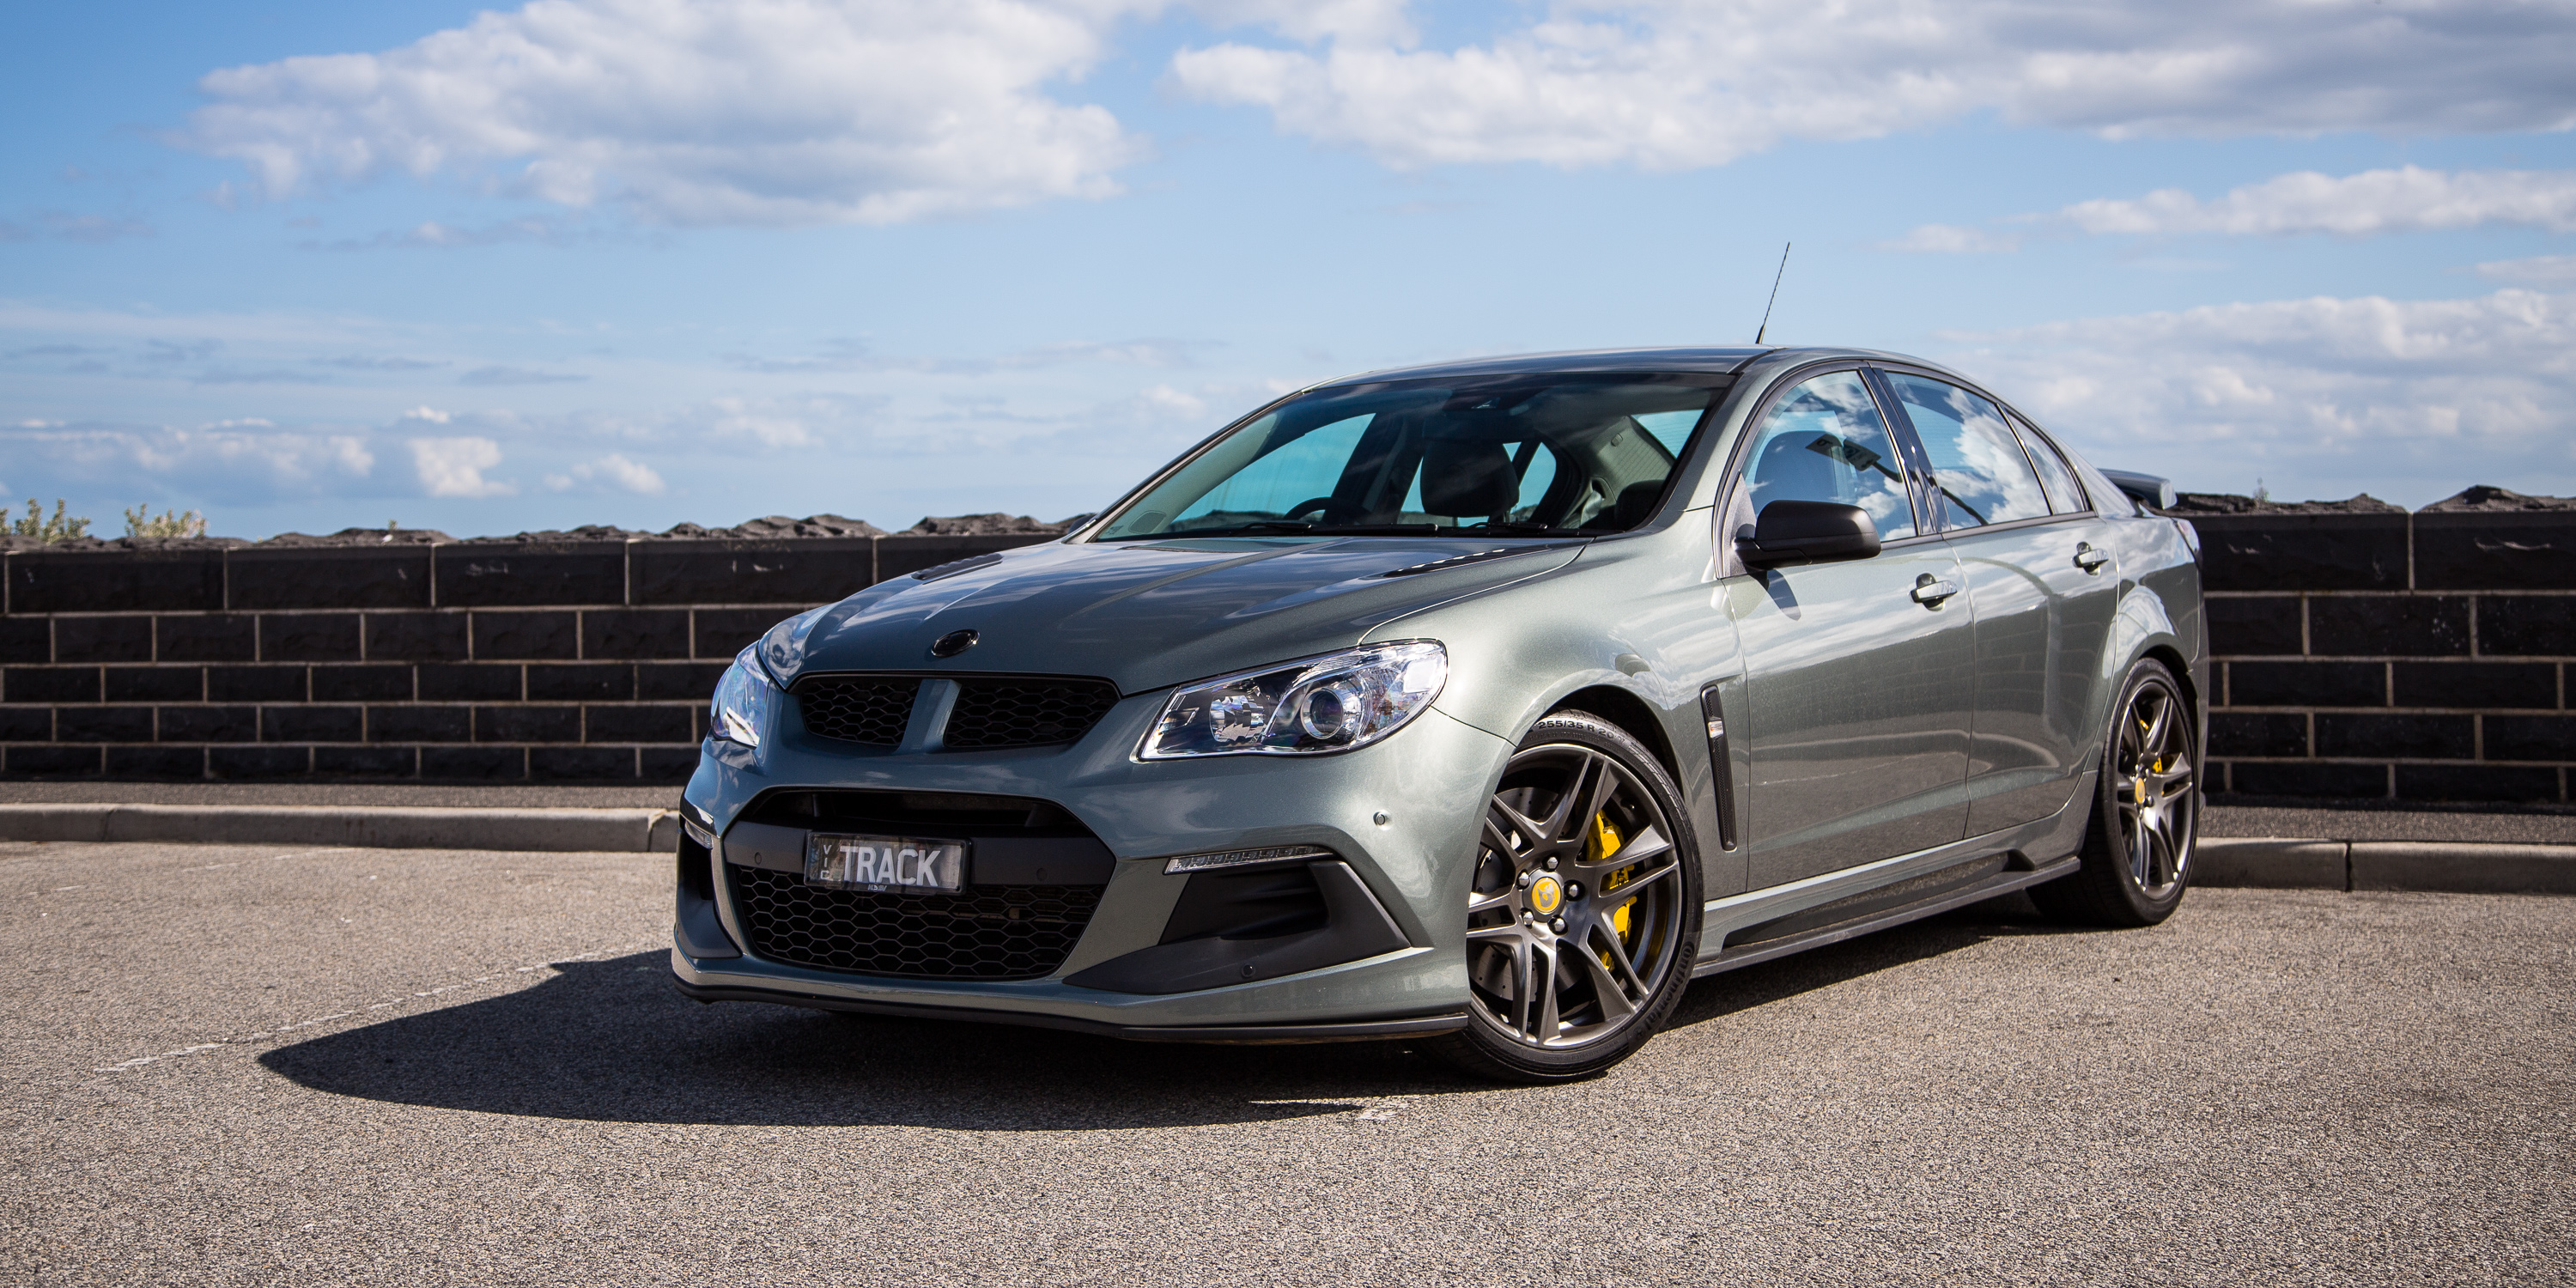 2016-hsv-clubsport-r8-track-edition-3.jpg